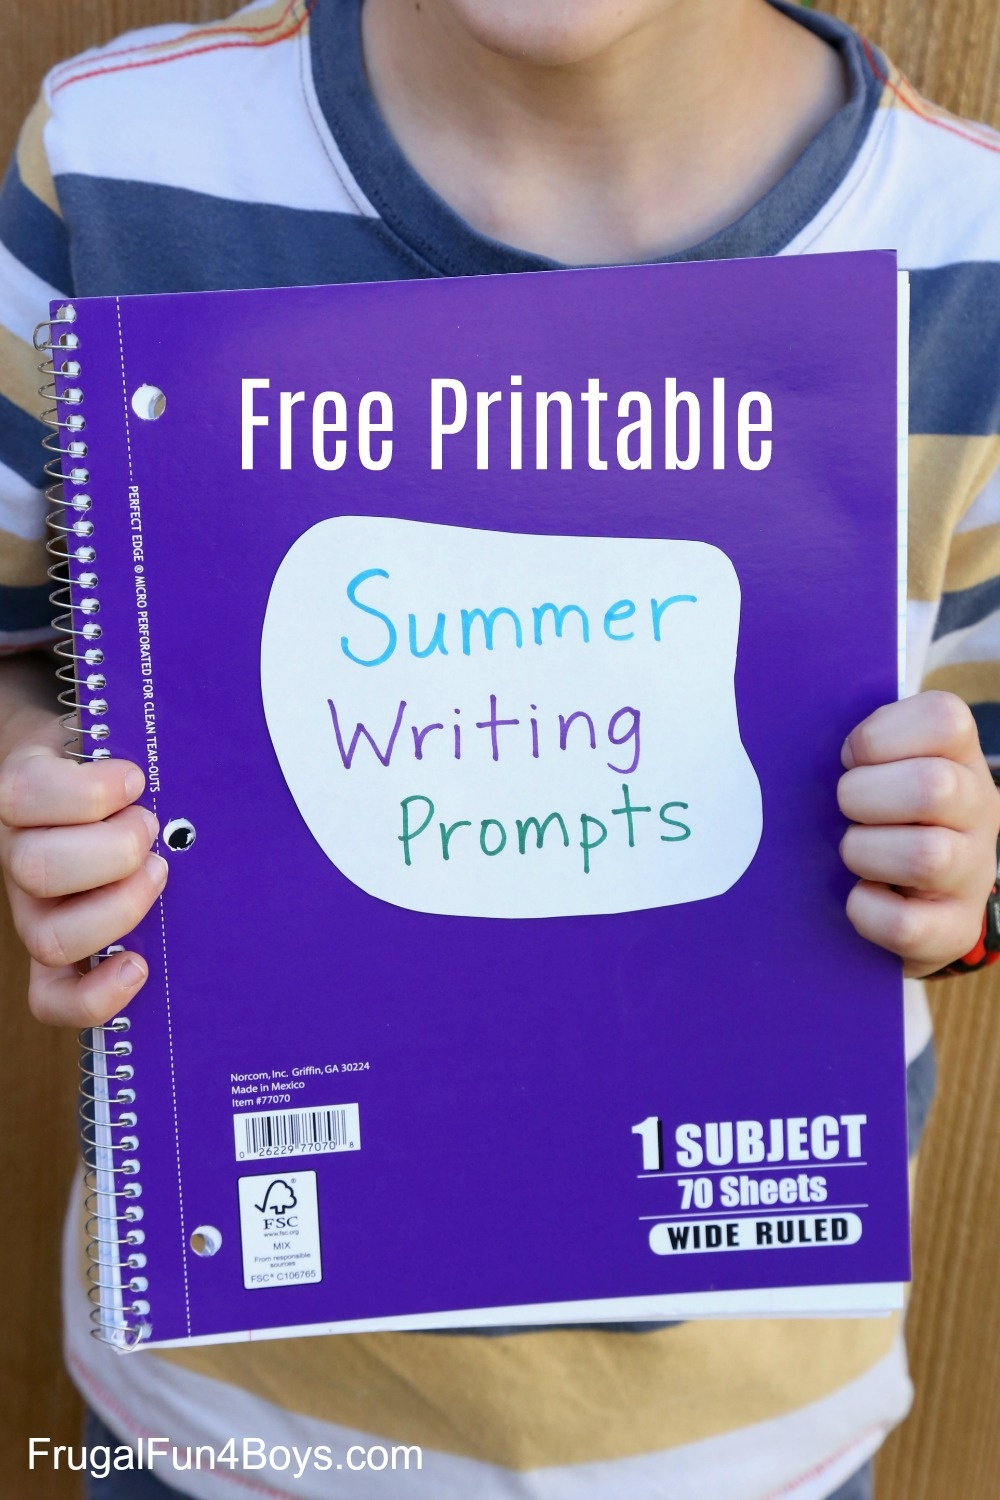 40 Printable Writing Prompts For 3Rd, 4Th, And 5Th Graders - Frugal - Free Printable Stories For 4Th Graders